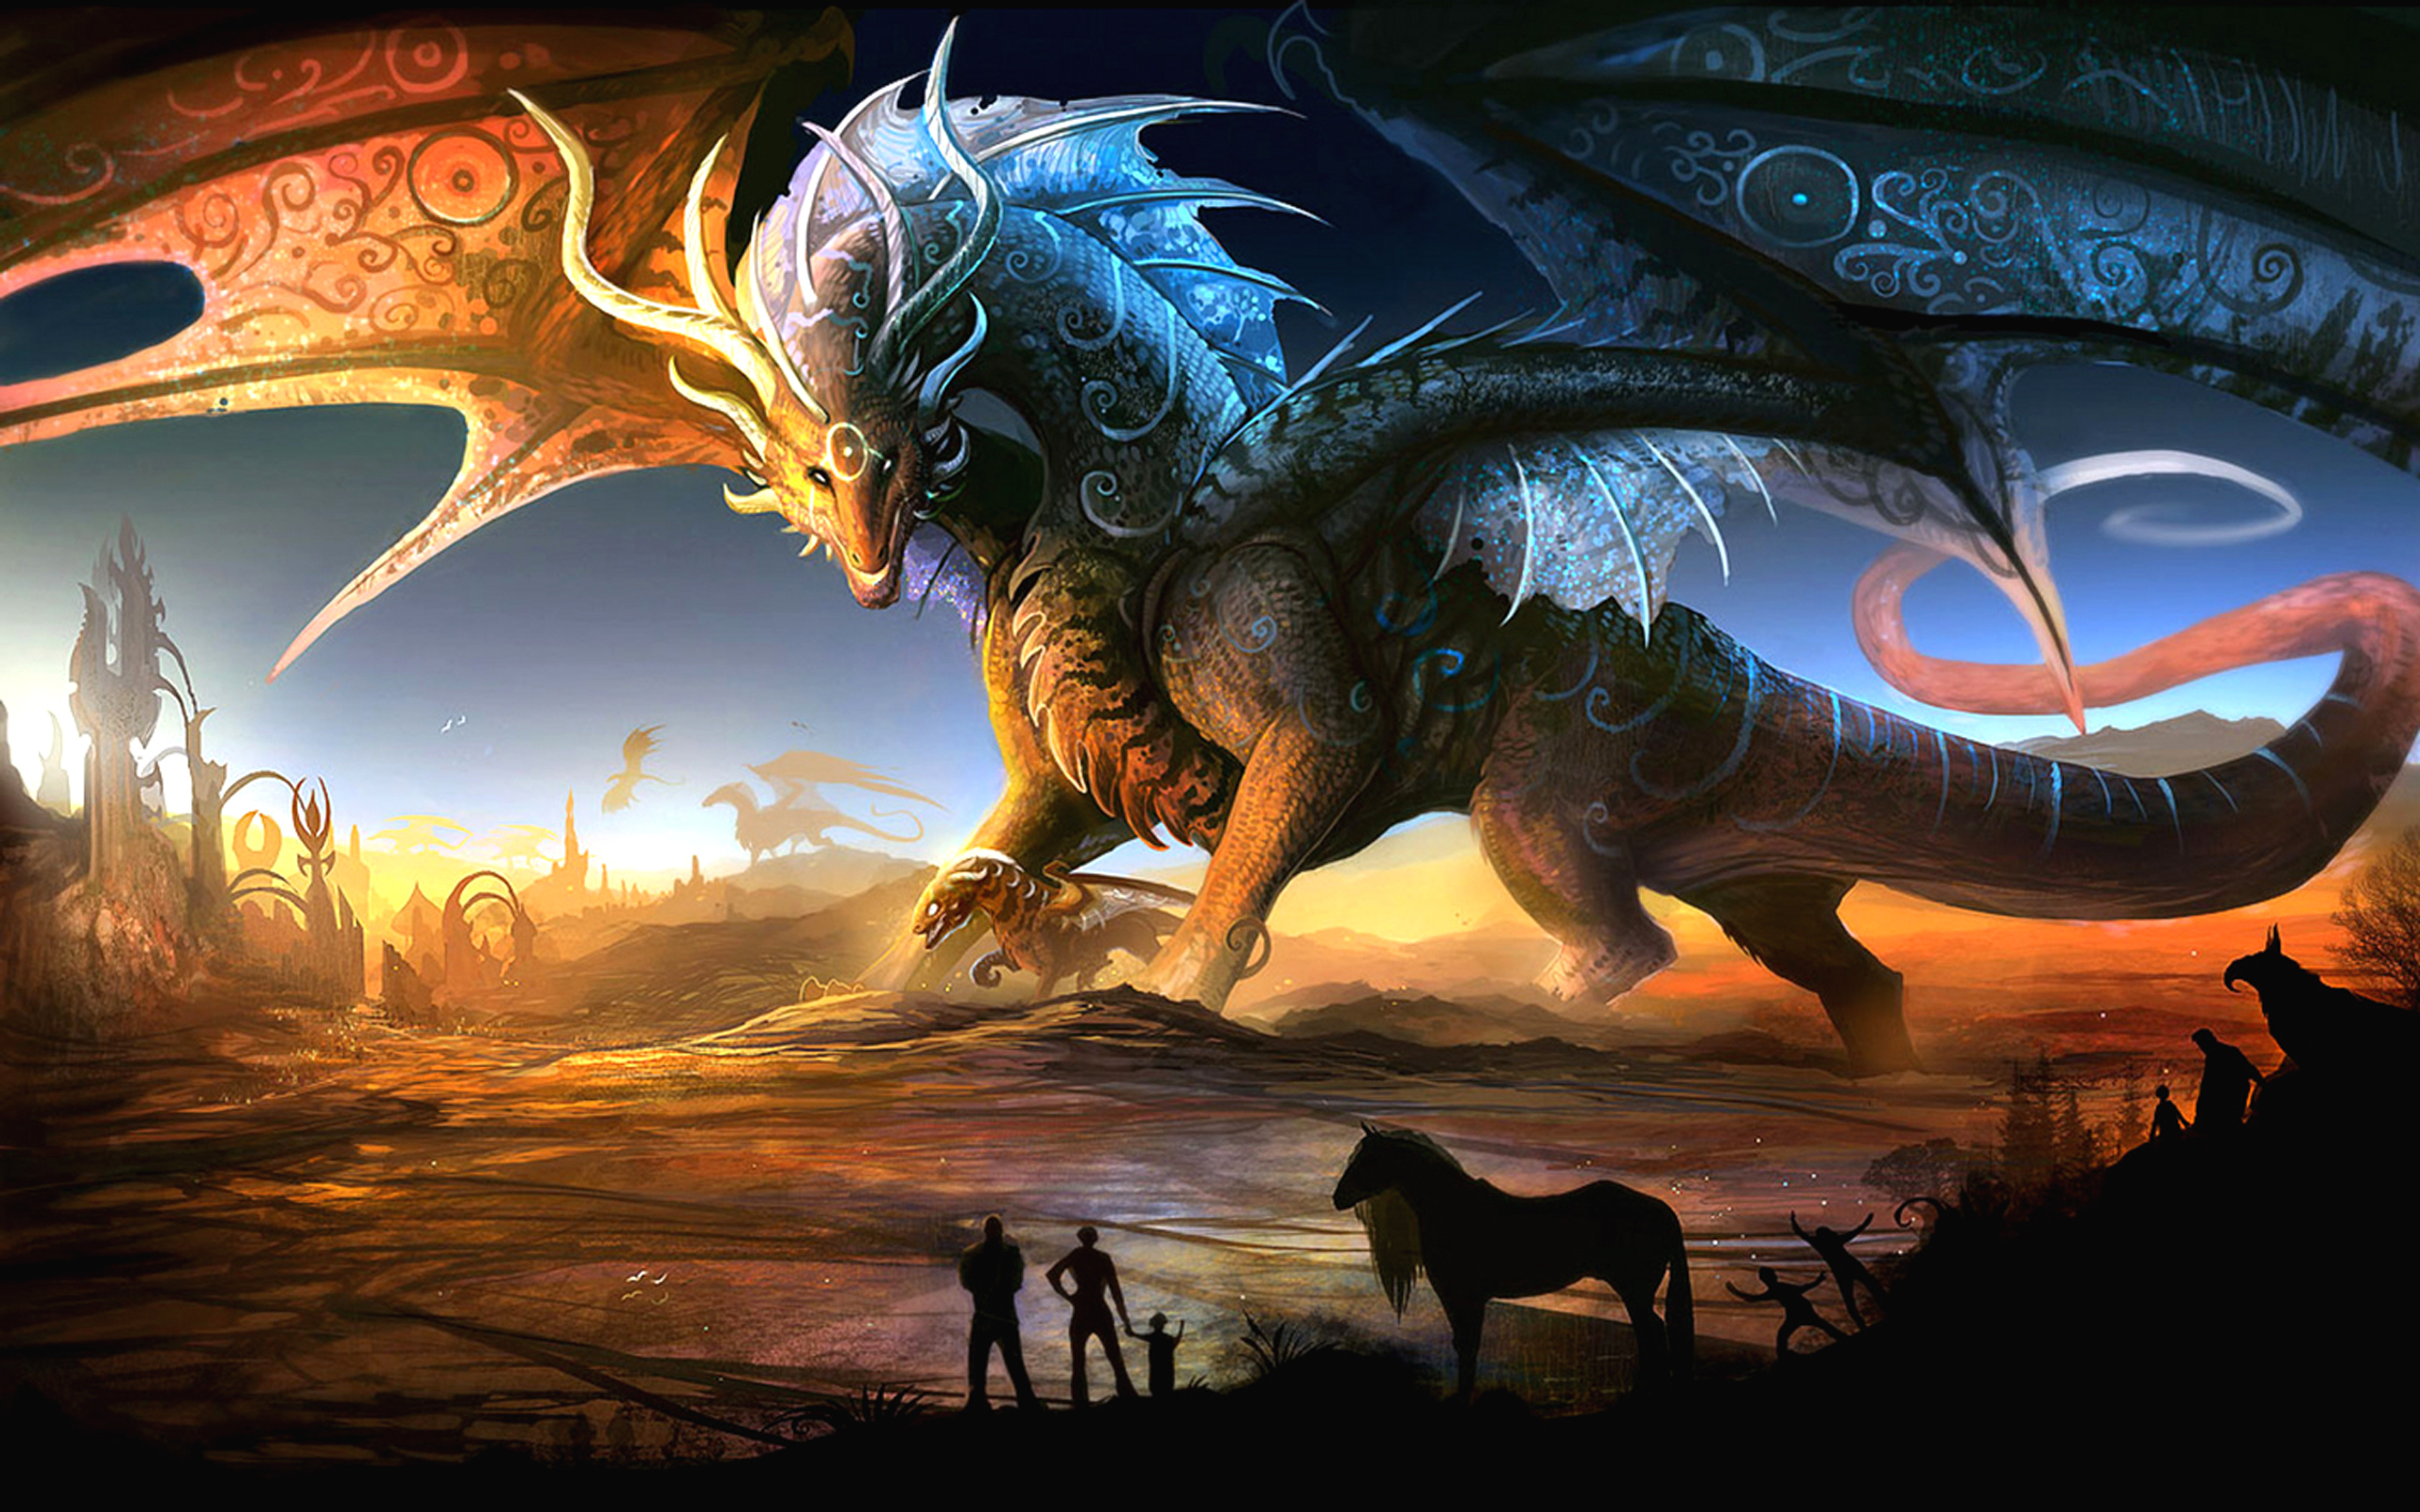 Stunning Epic Wallpapers and Desktop Backgrounds 2560x1600